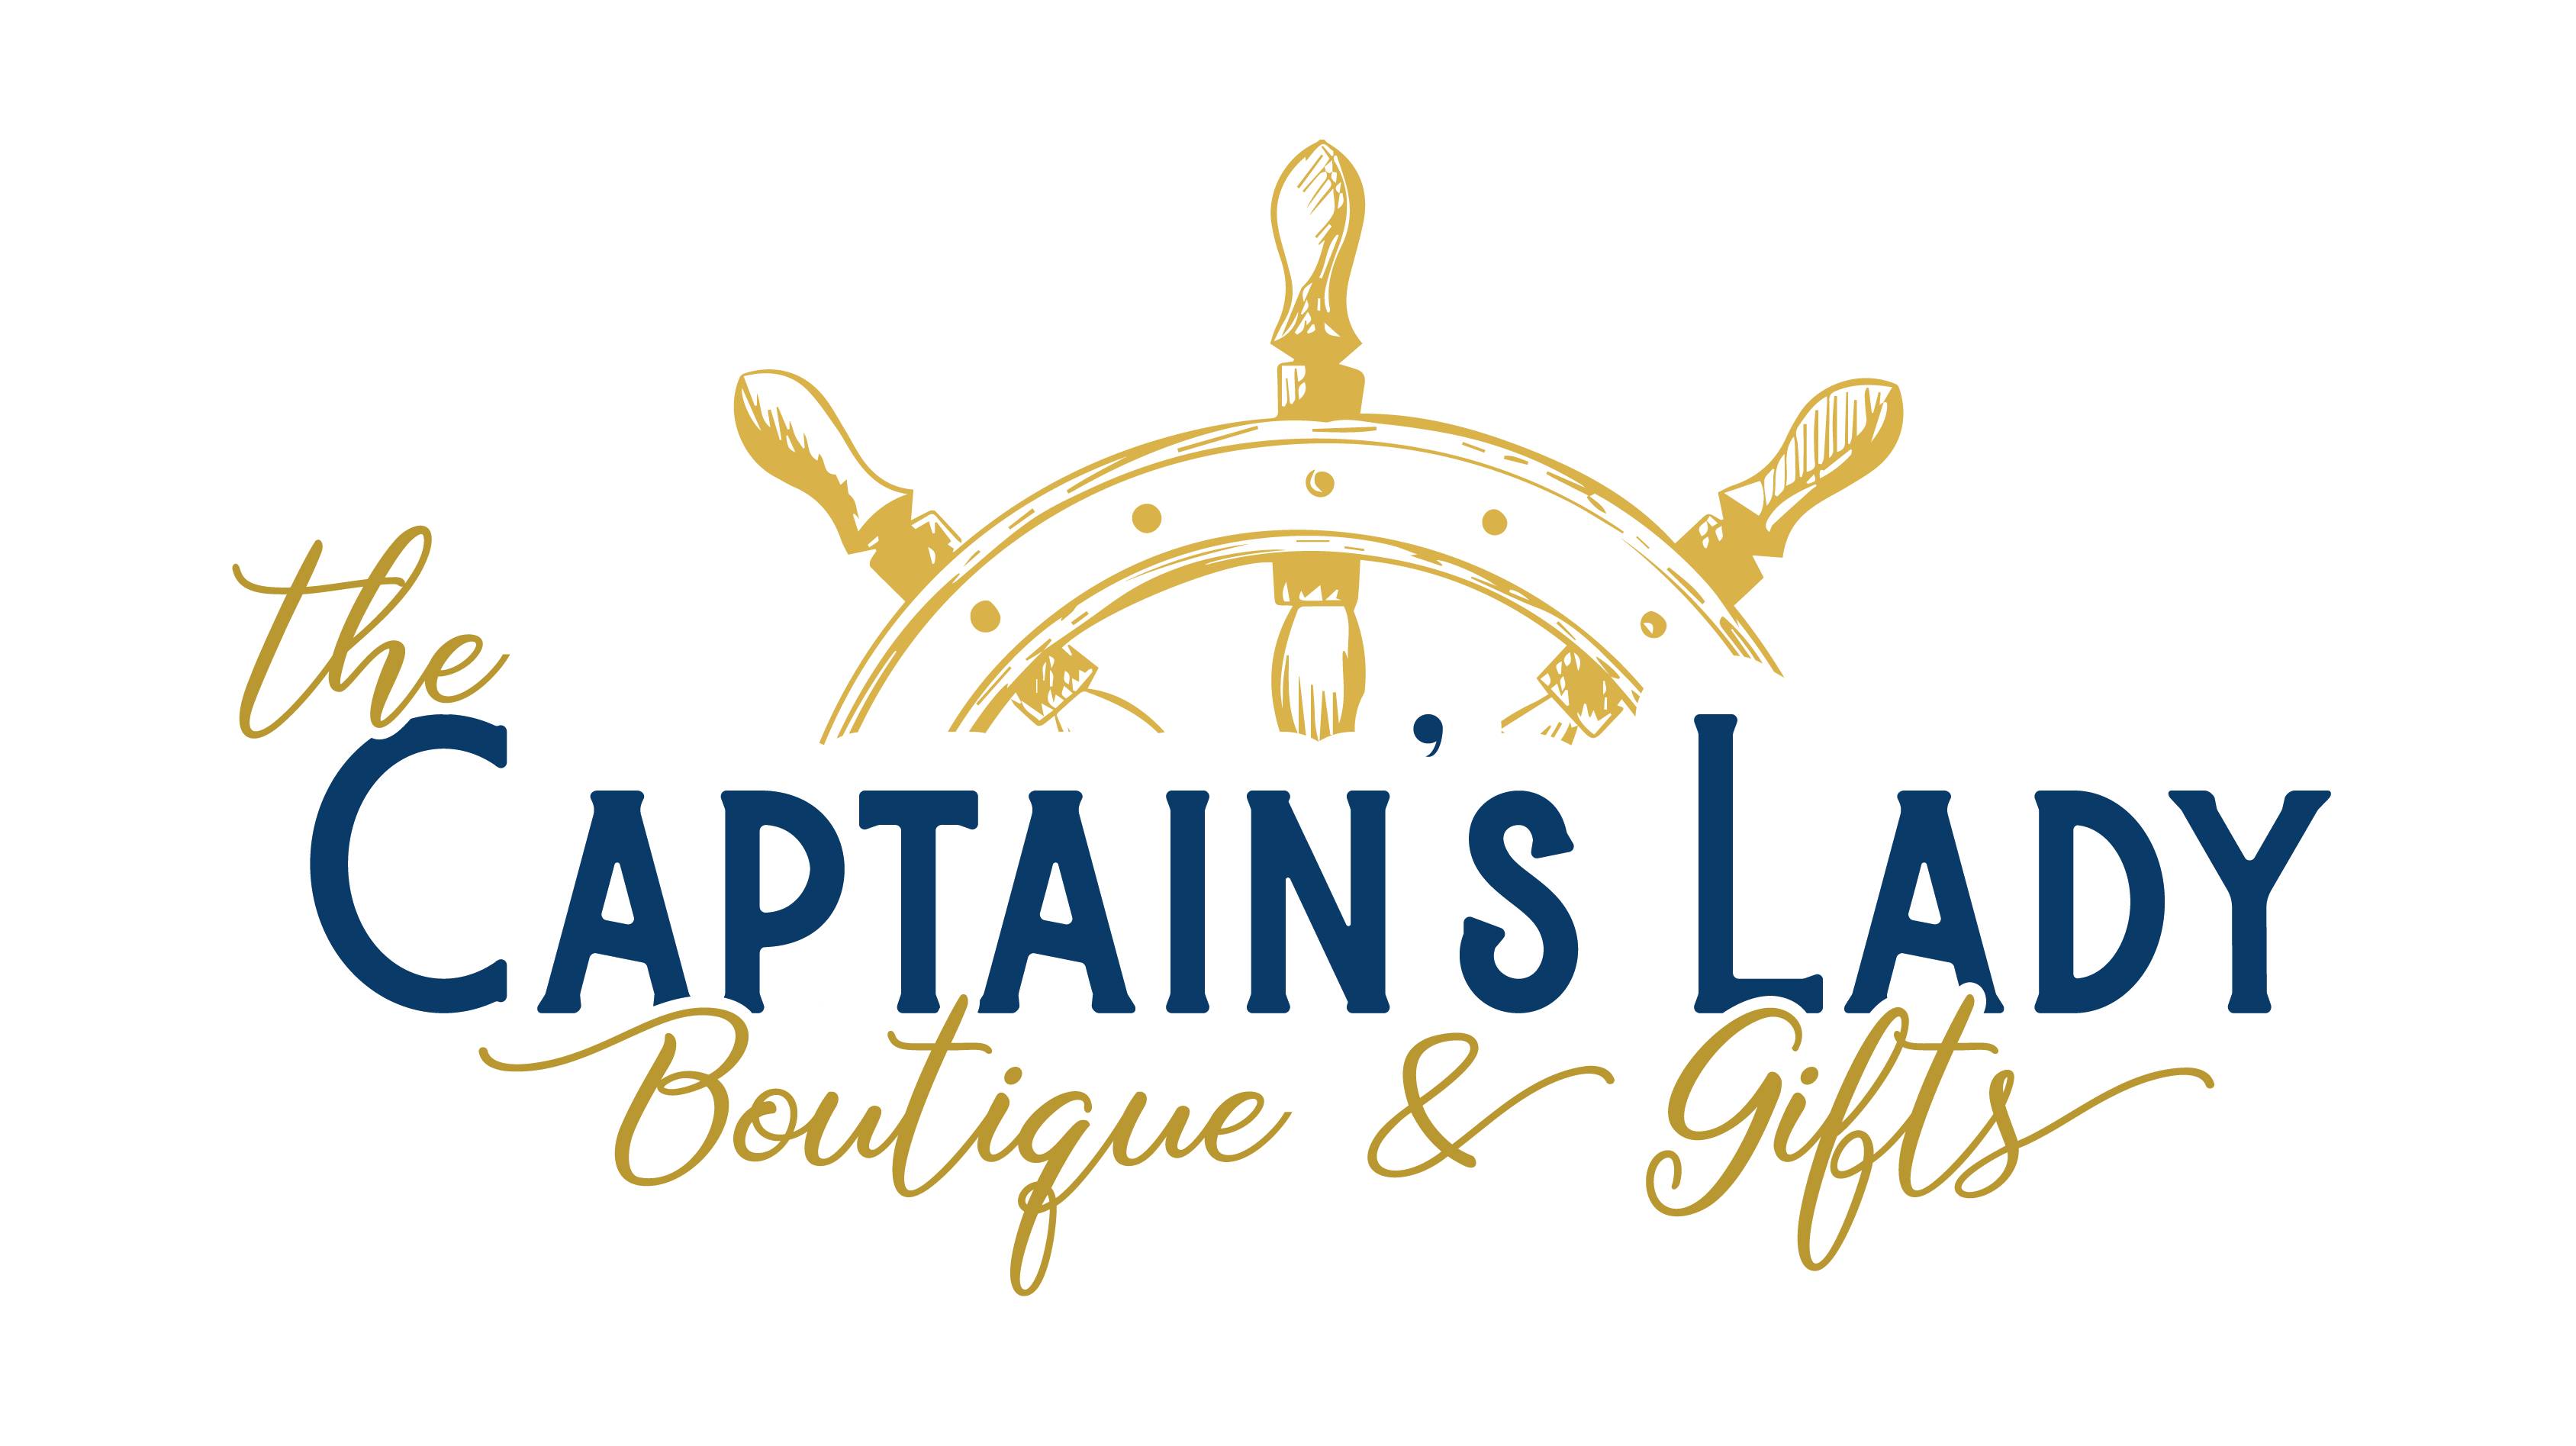 Captains Lady R2AK